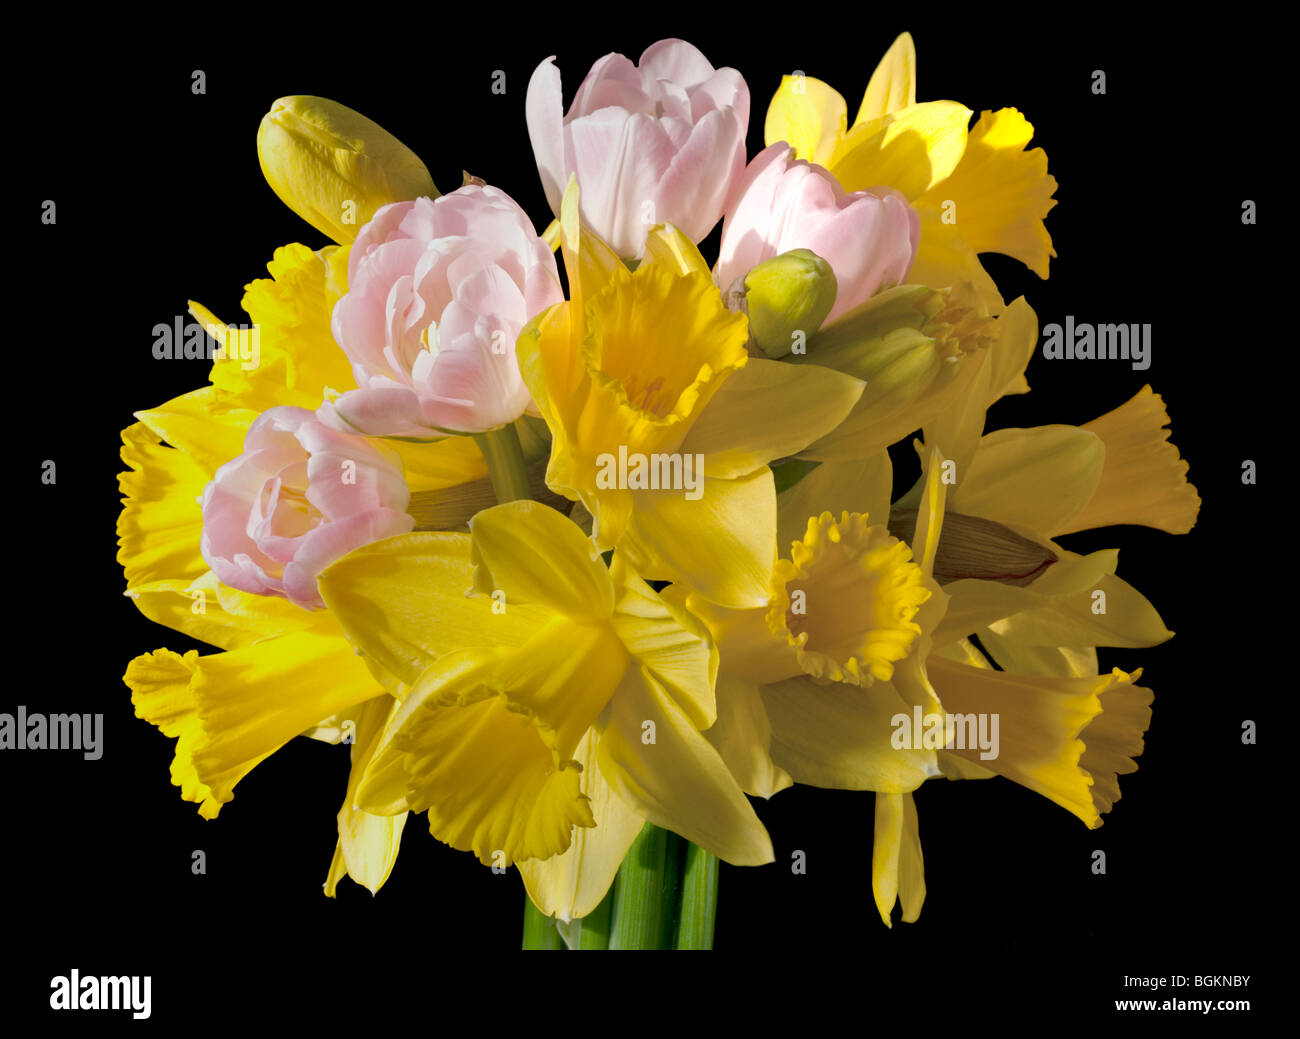 Spring bouquet of Yellow Daffodils and Pink Tulips - Stock Image